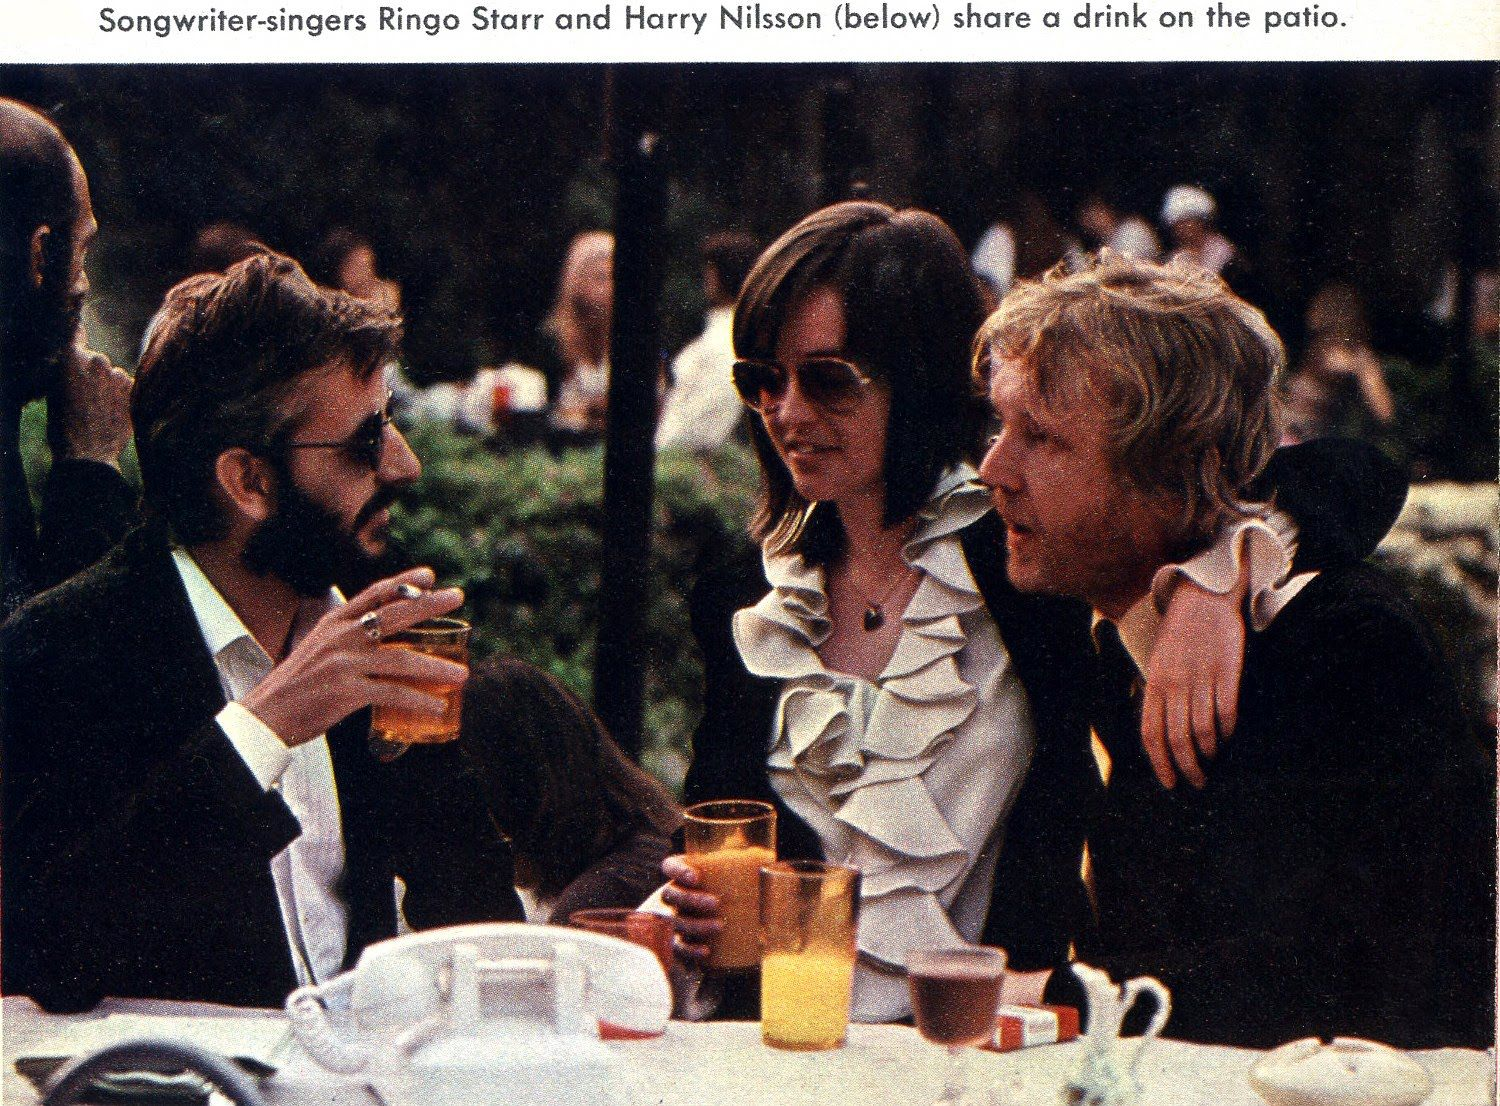 Ringo Starr and Harry - with future wife, Una O'Keefe - hanging at the Playboy Mansion West in 1974